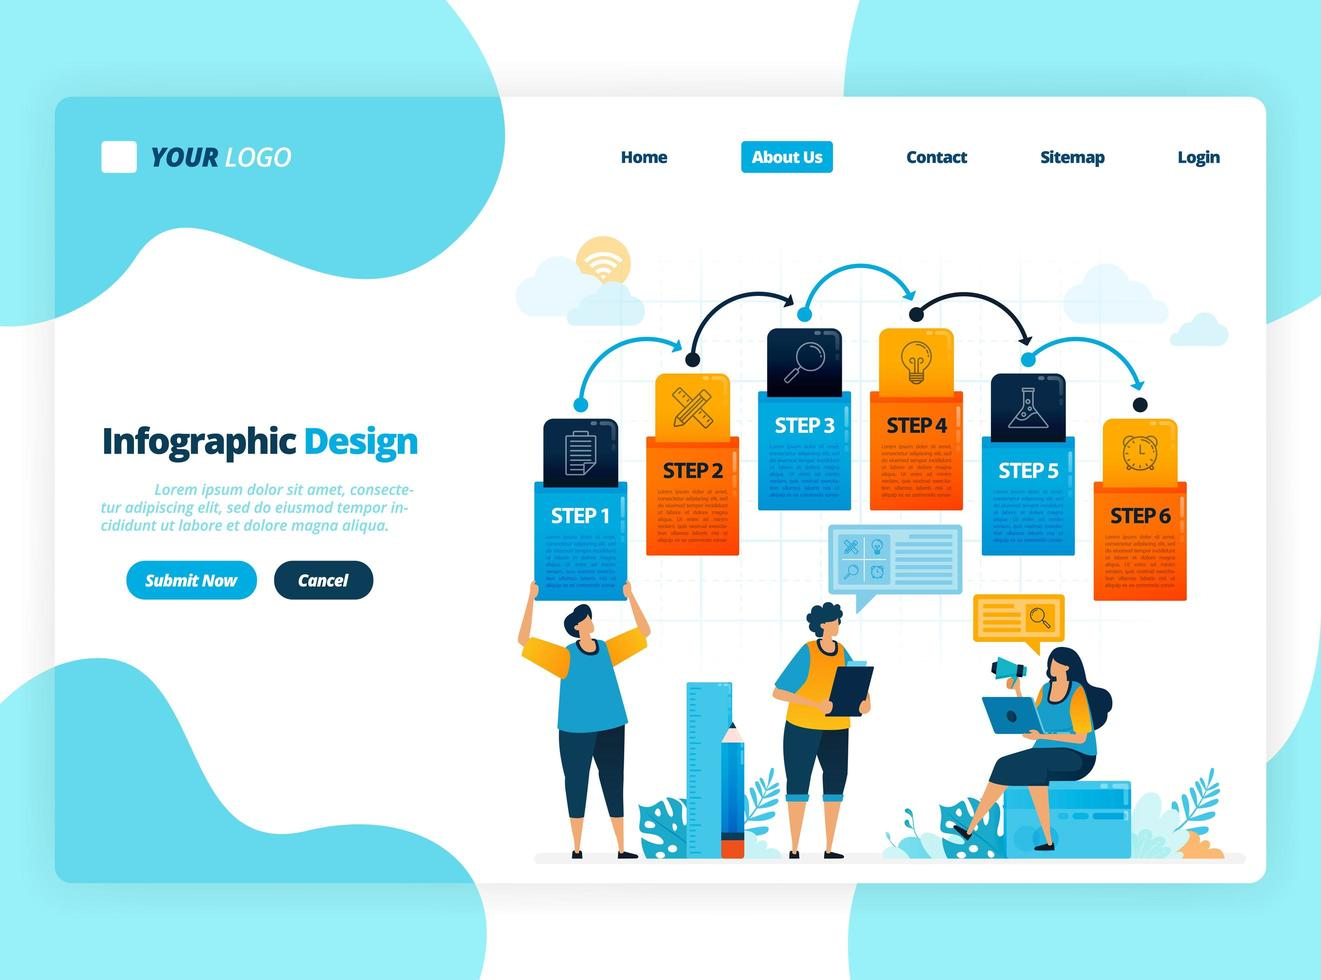 human illustration and infographic design for business options, steps in learning, education processes. Flat vector for landing page, web, website, banner, mobile apps, flyer, poster, brochure